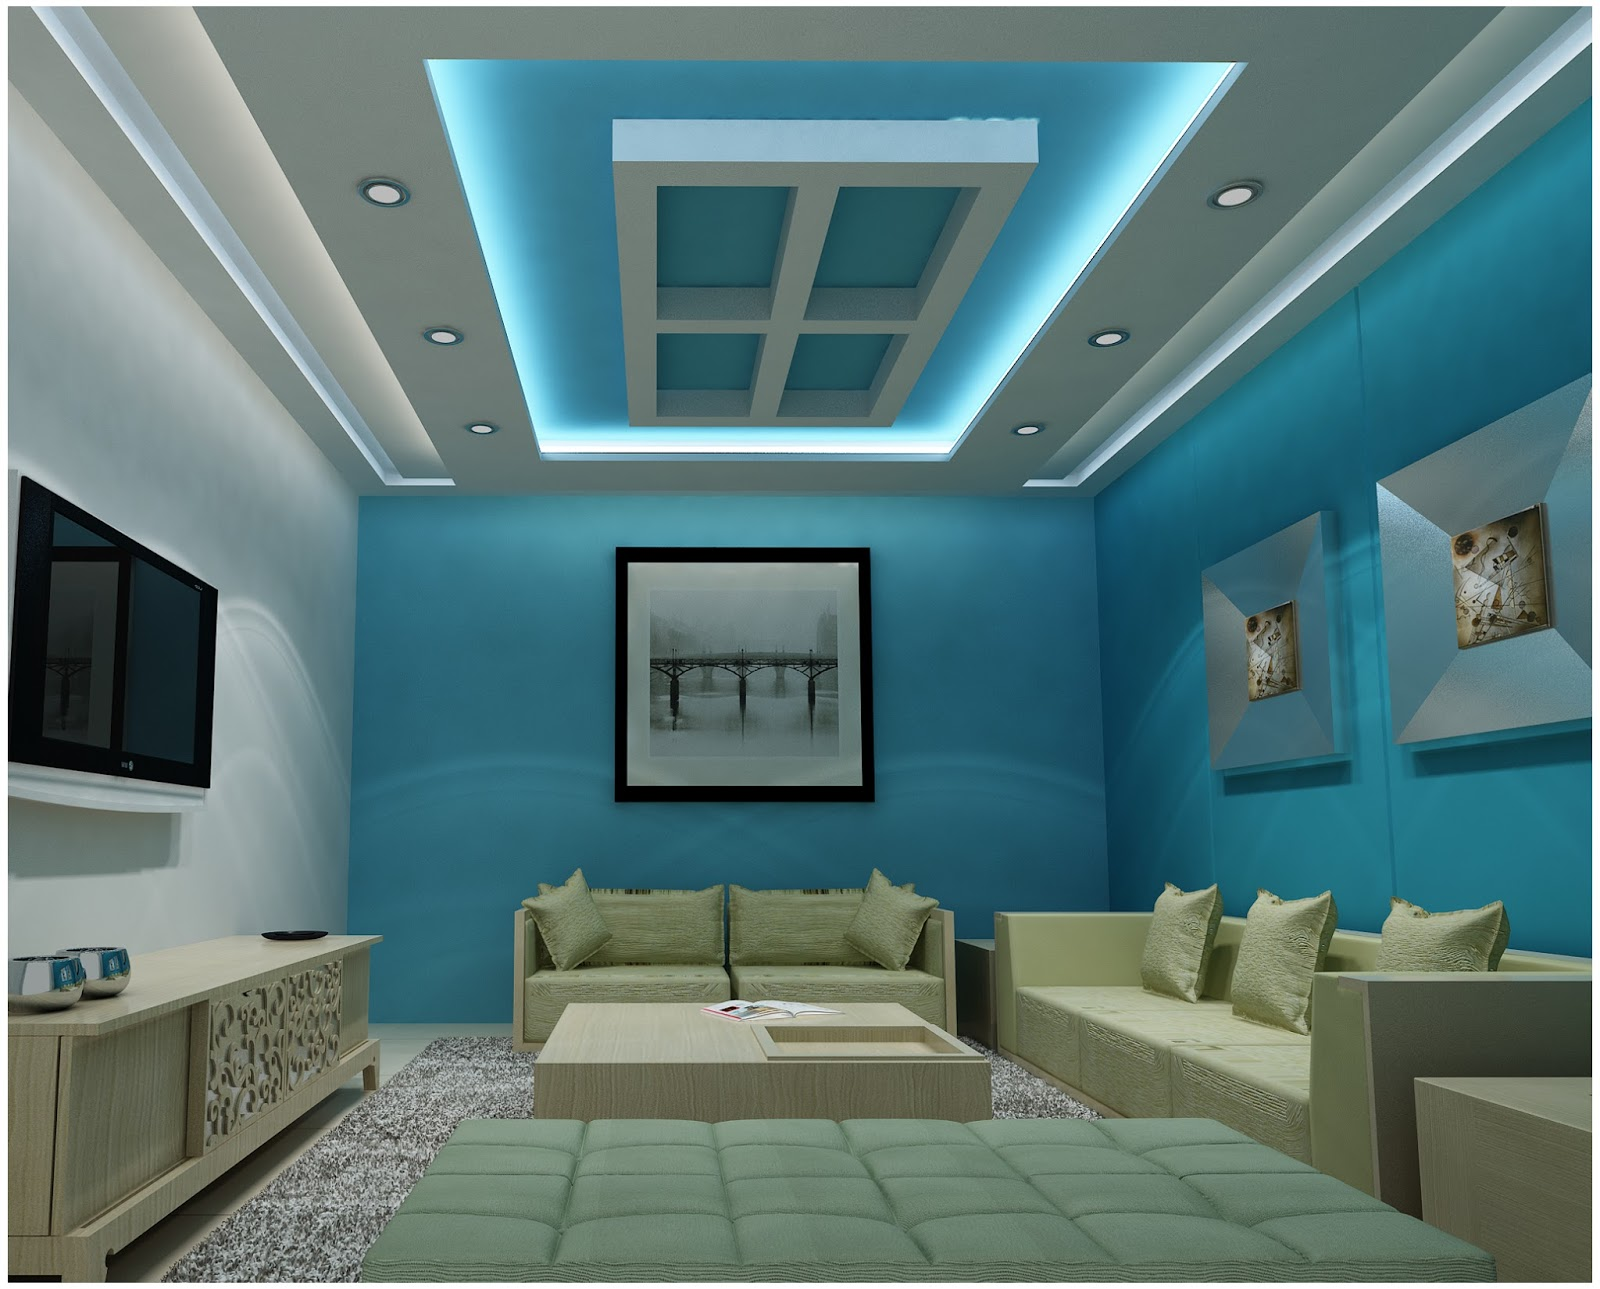 Plaster ceiling luxtury joy studio design gallery best design - Ideal ceiling height for a house what matters ...